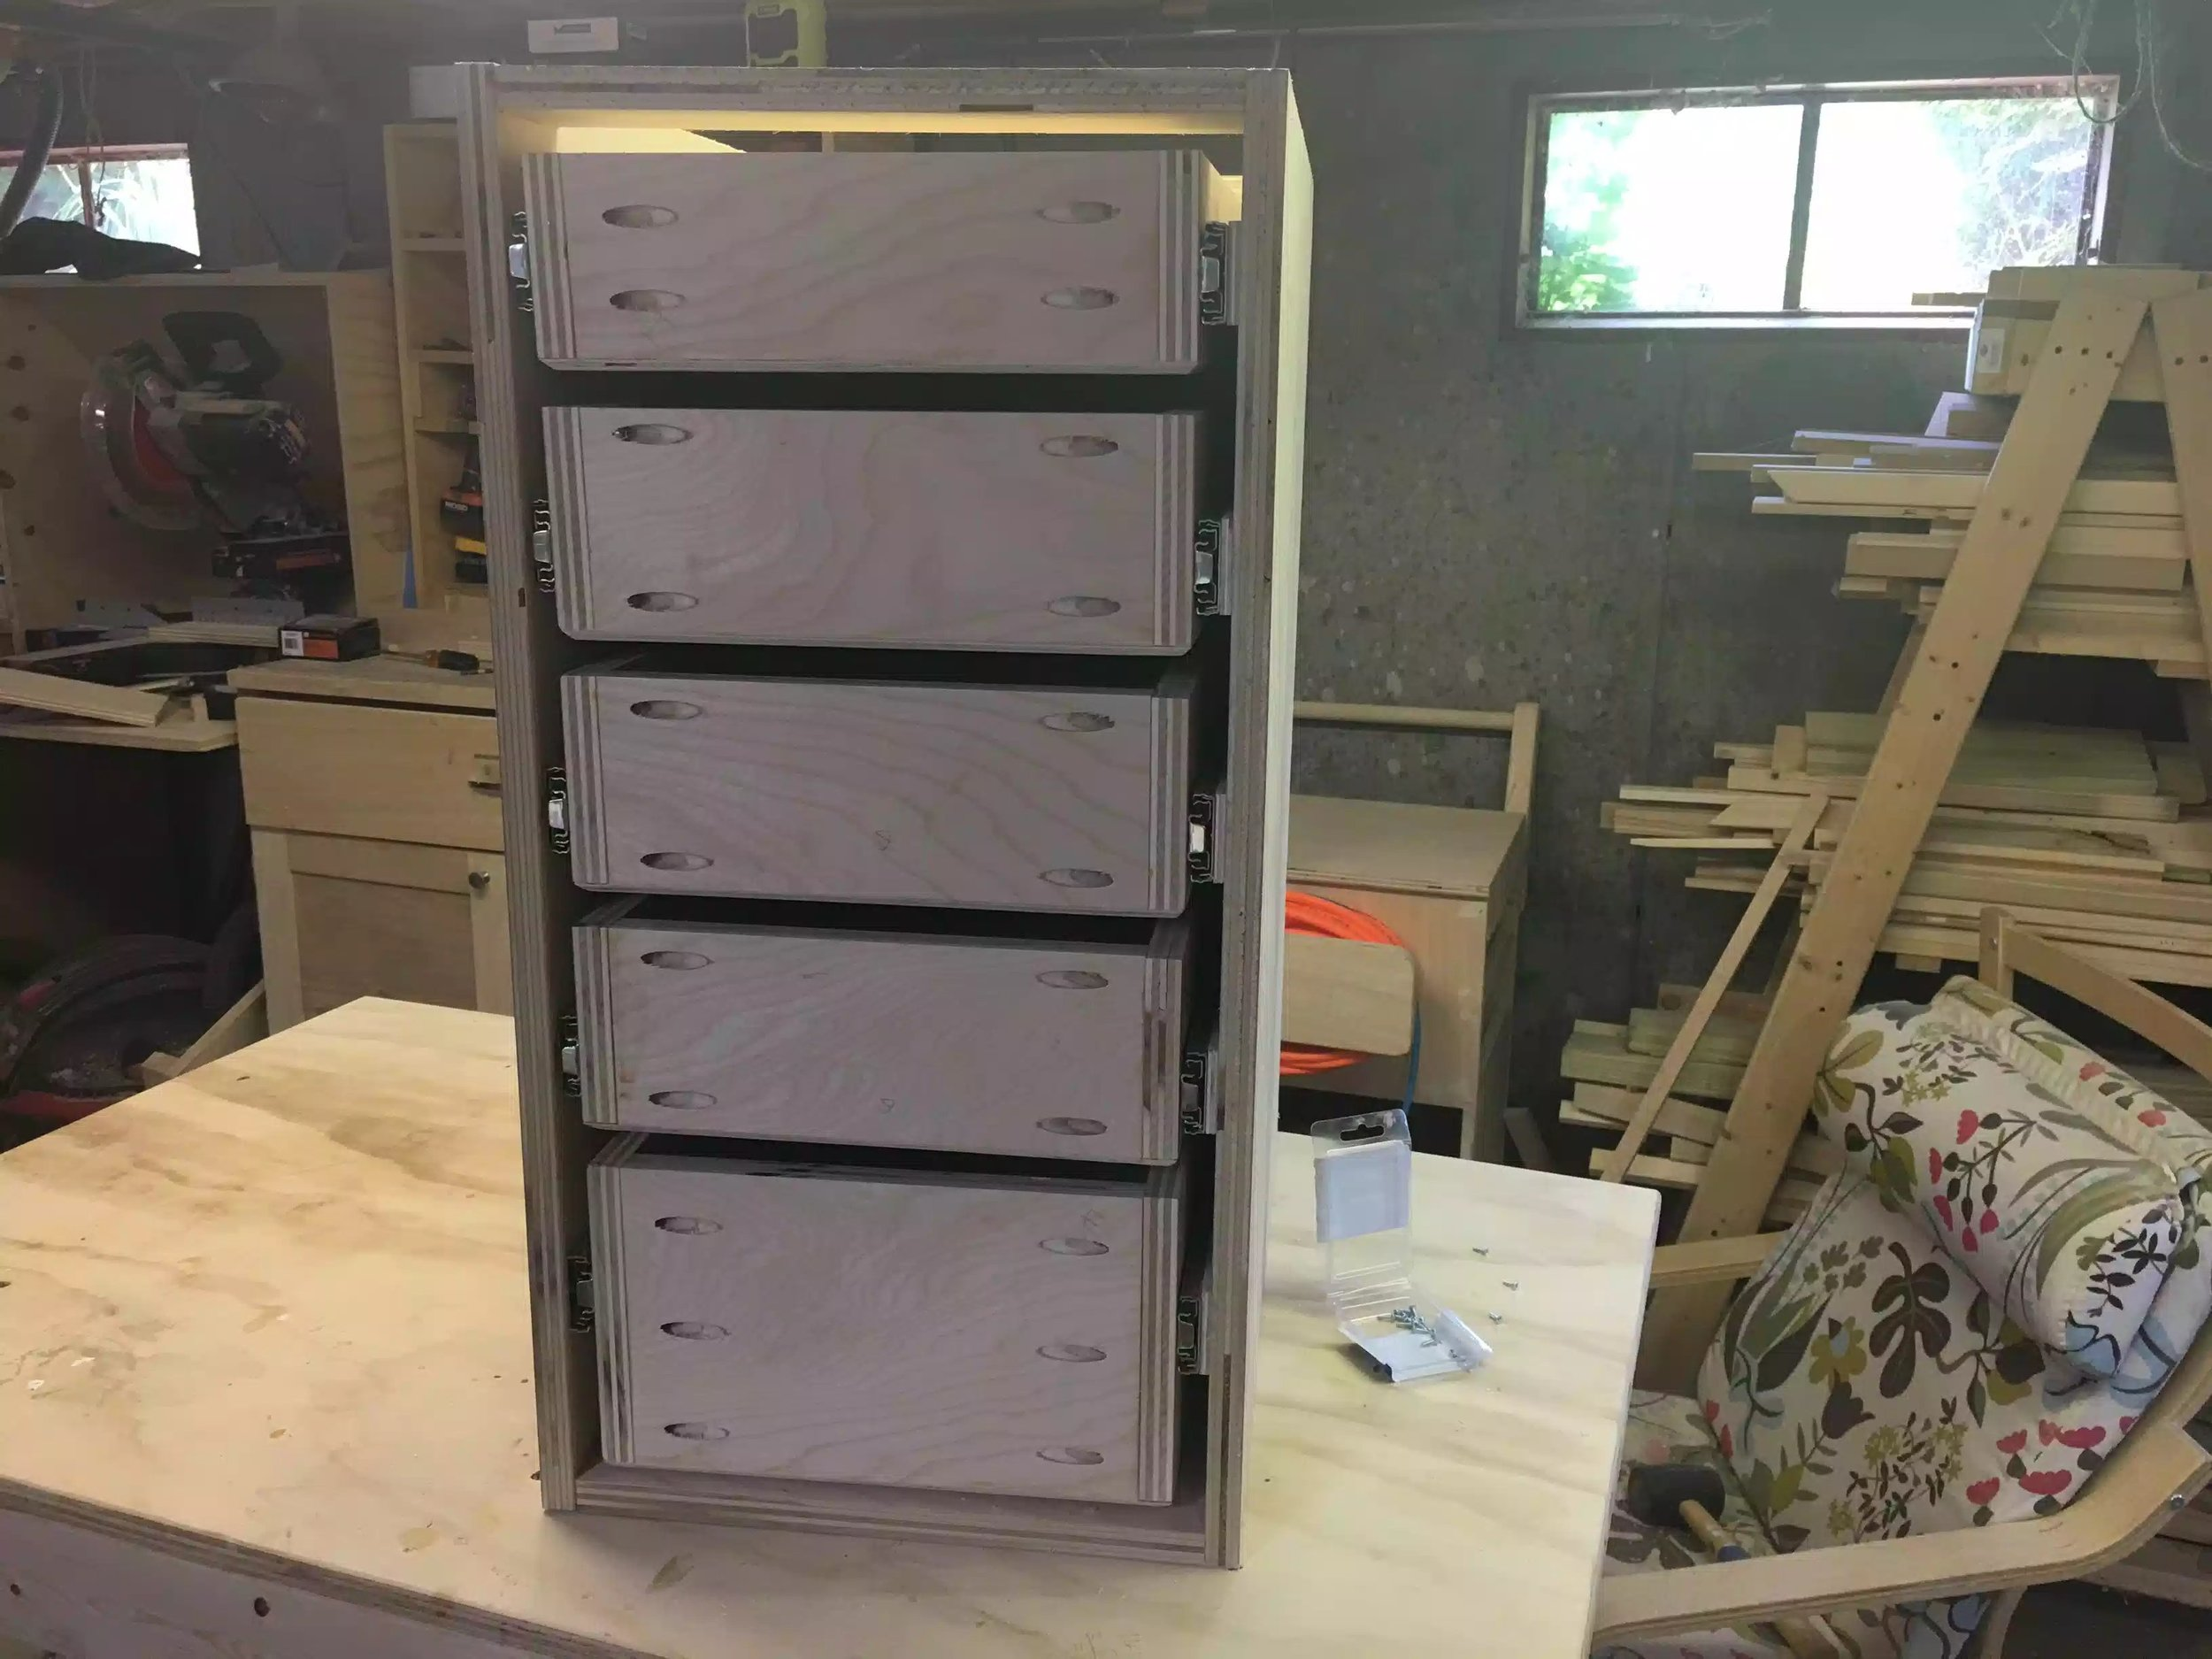 Finally here is the front of the cabinet, I will be adding false fronts to hide the pocket hole screws and it will also add that nice finished look to the cart.